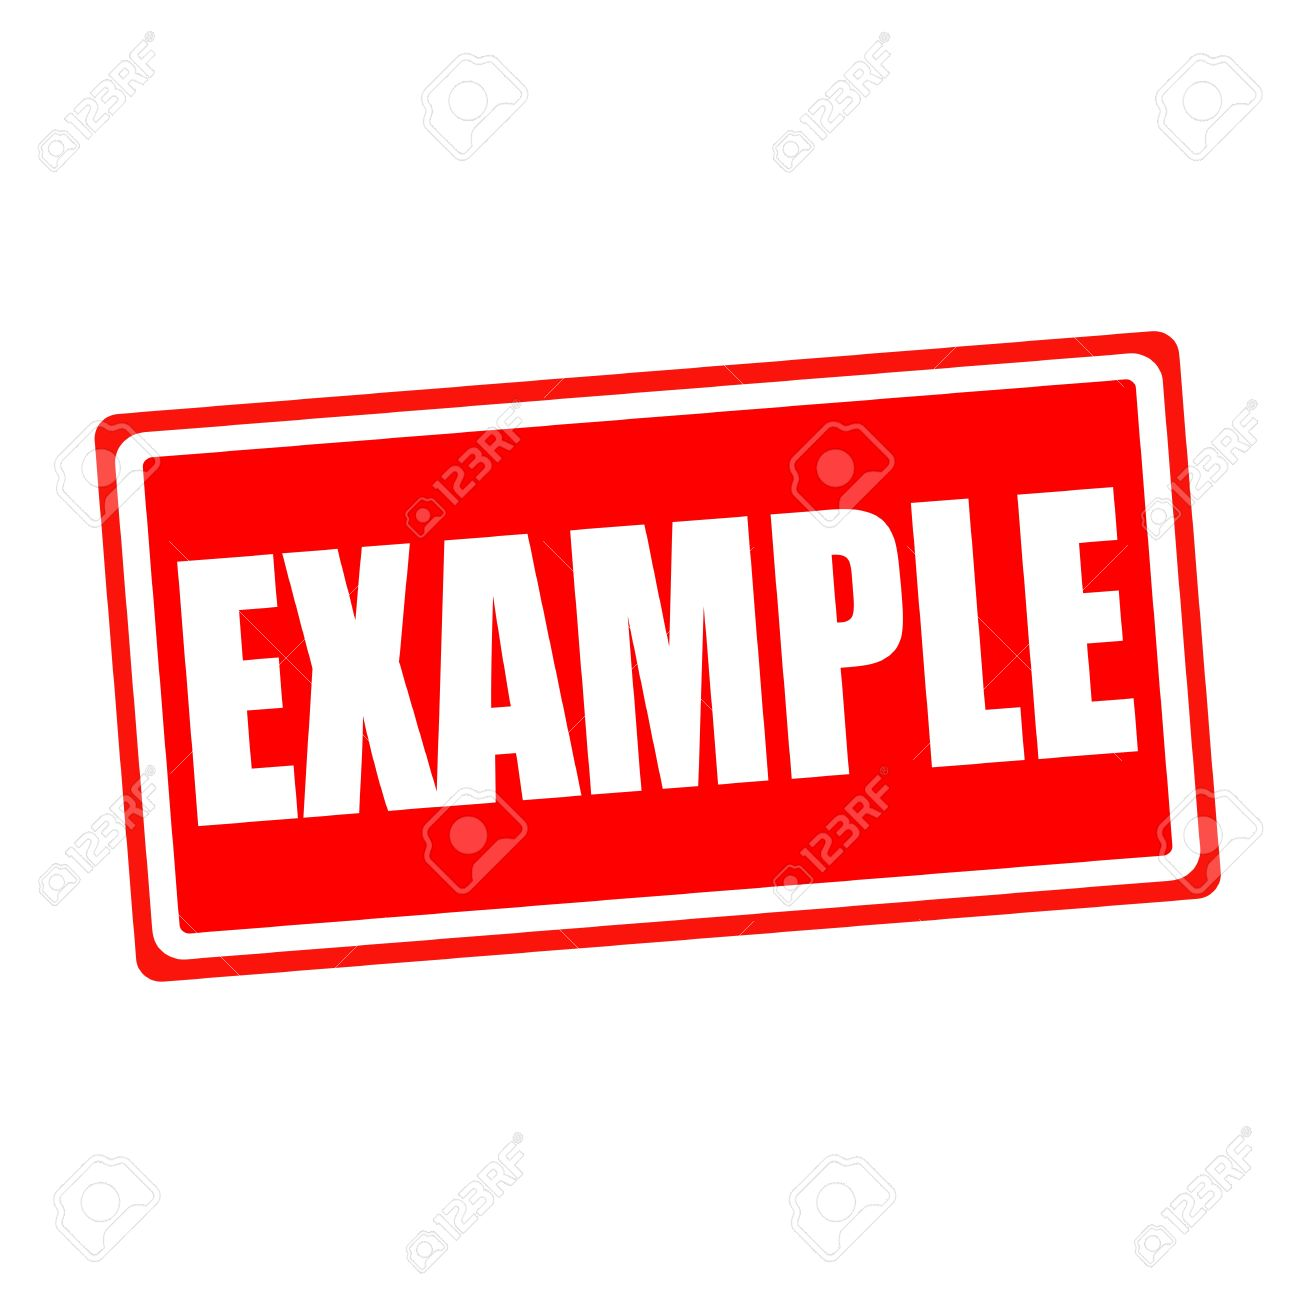 example white stamp text on red backgroud stock photo picture and